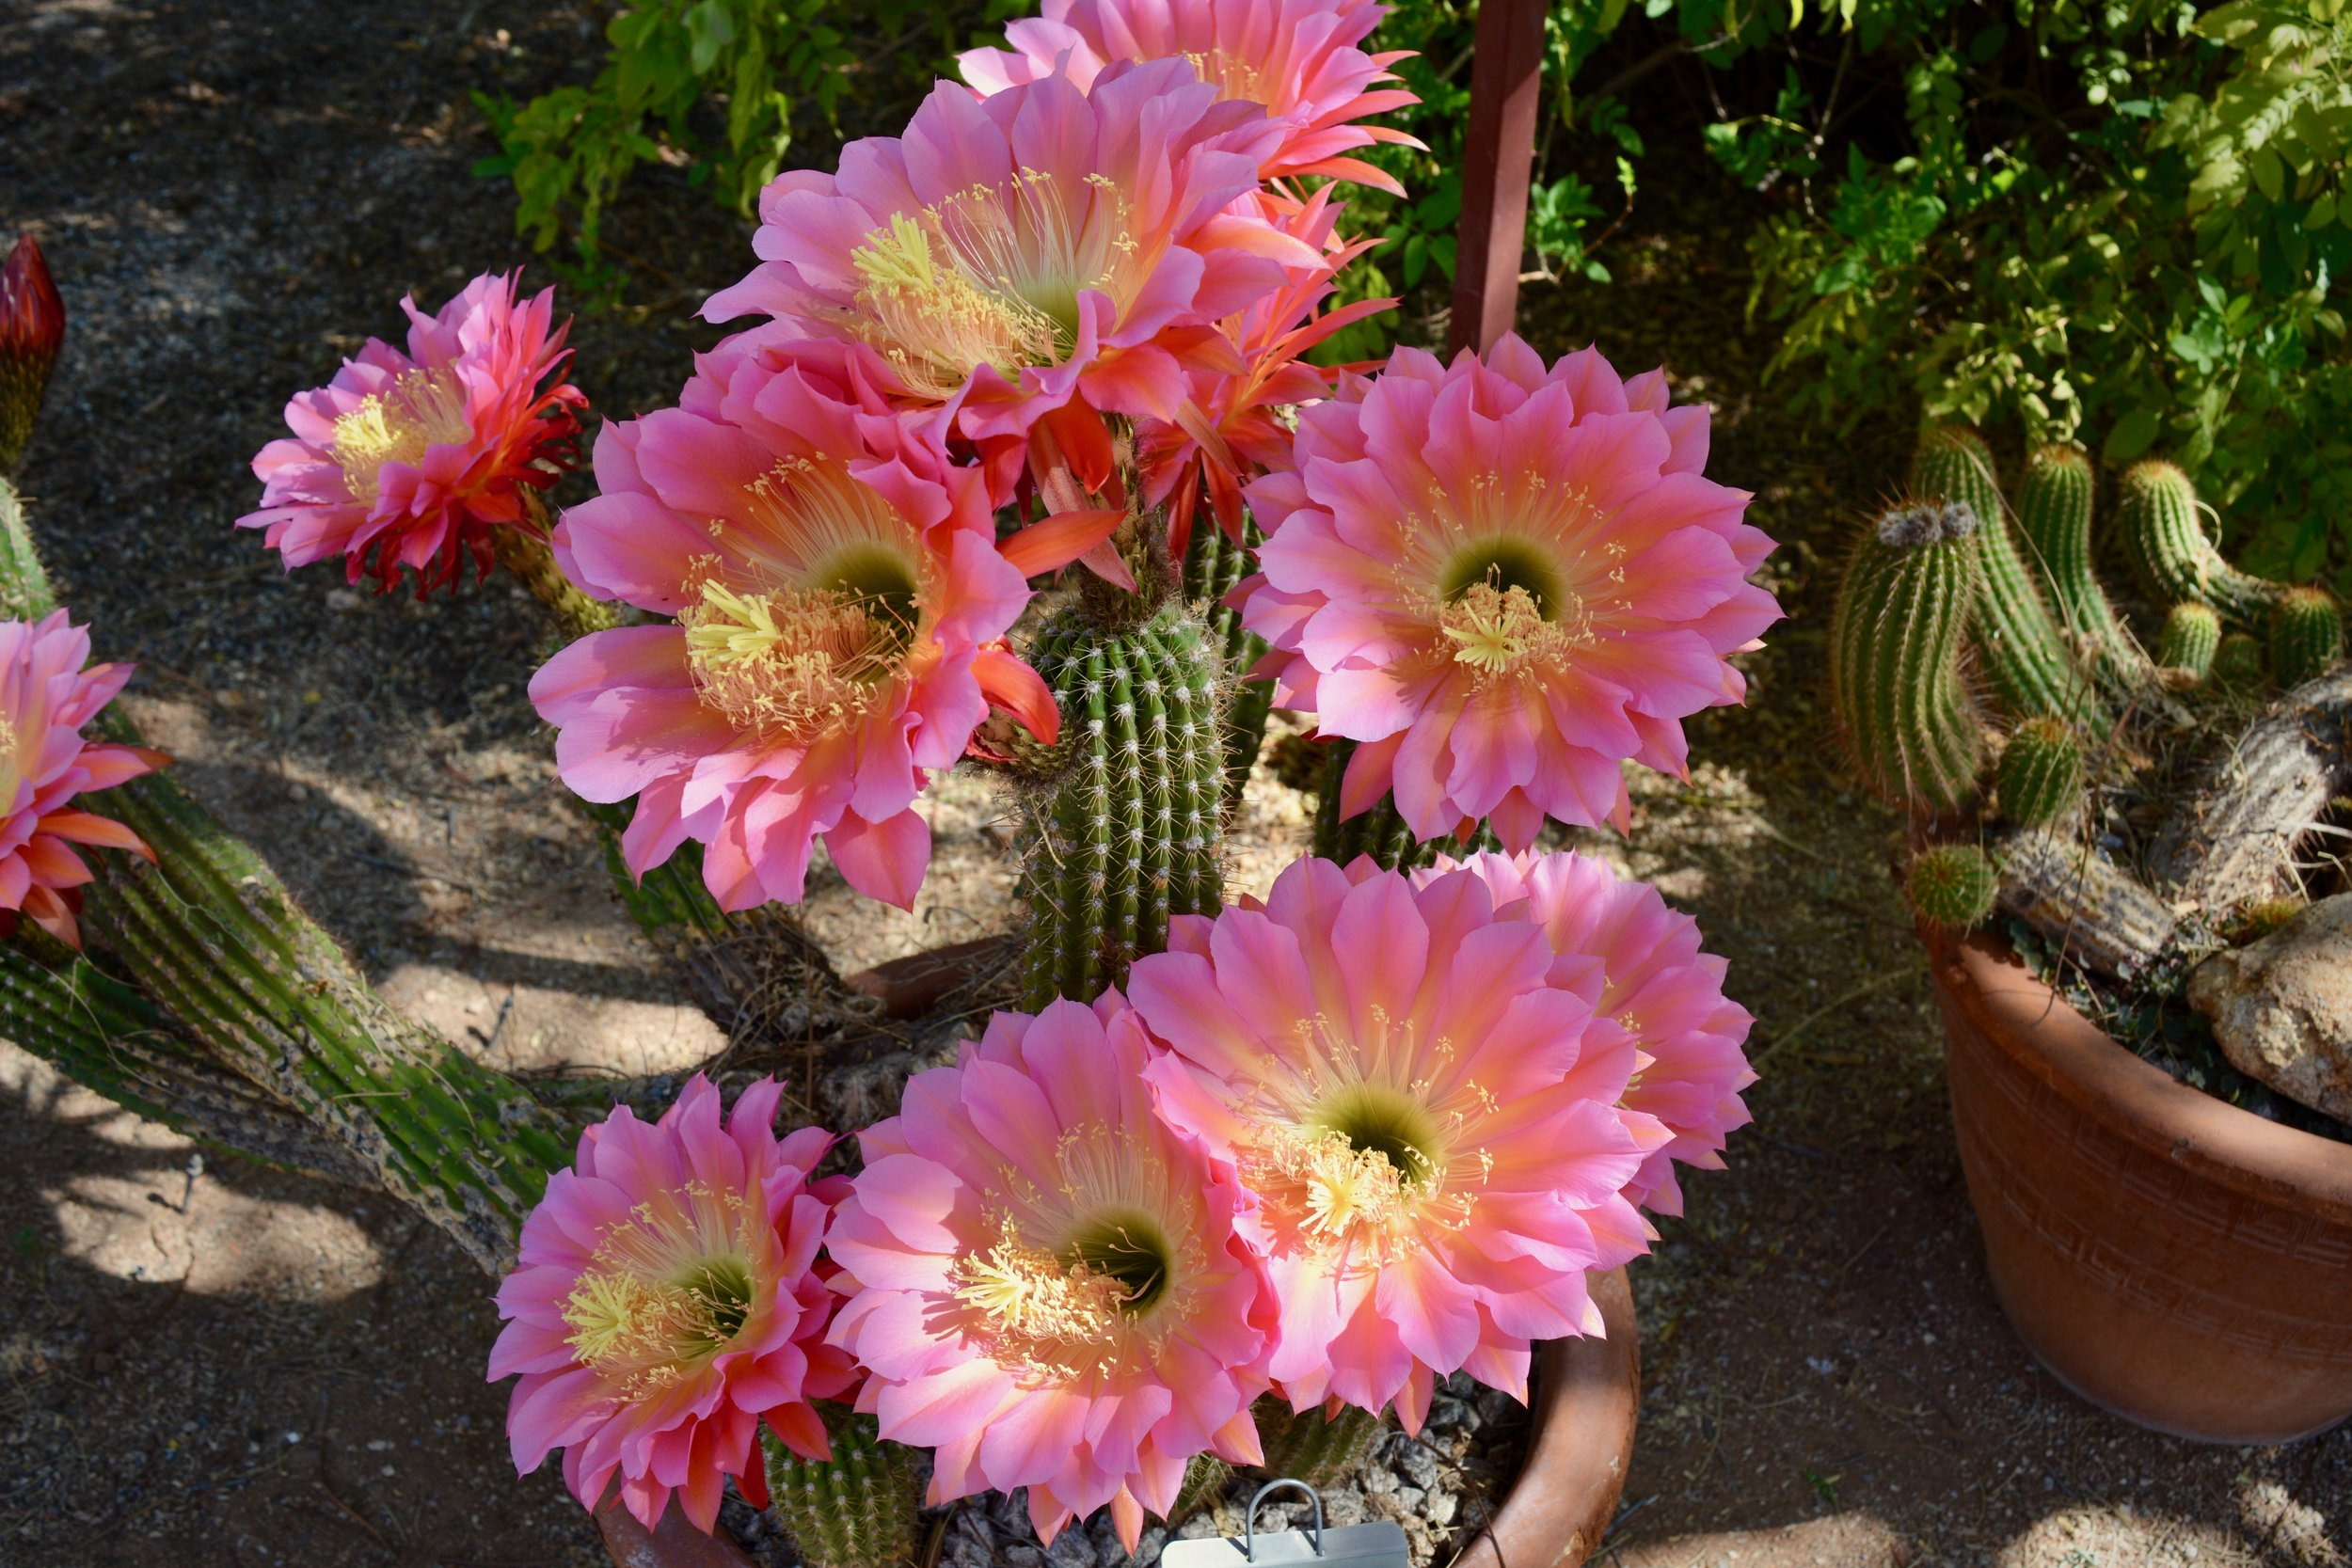 Some of these cactus flowers are just gigantic (photo from Tucson Botanical Garden)